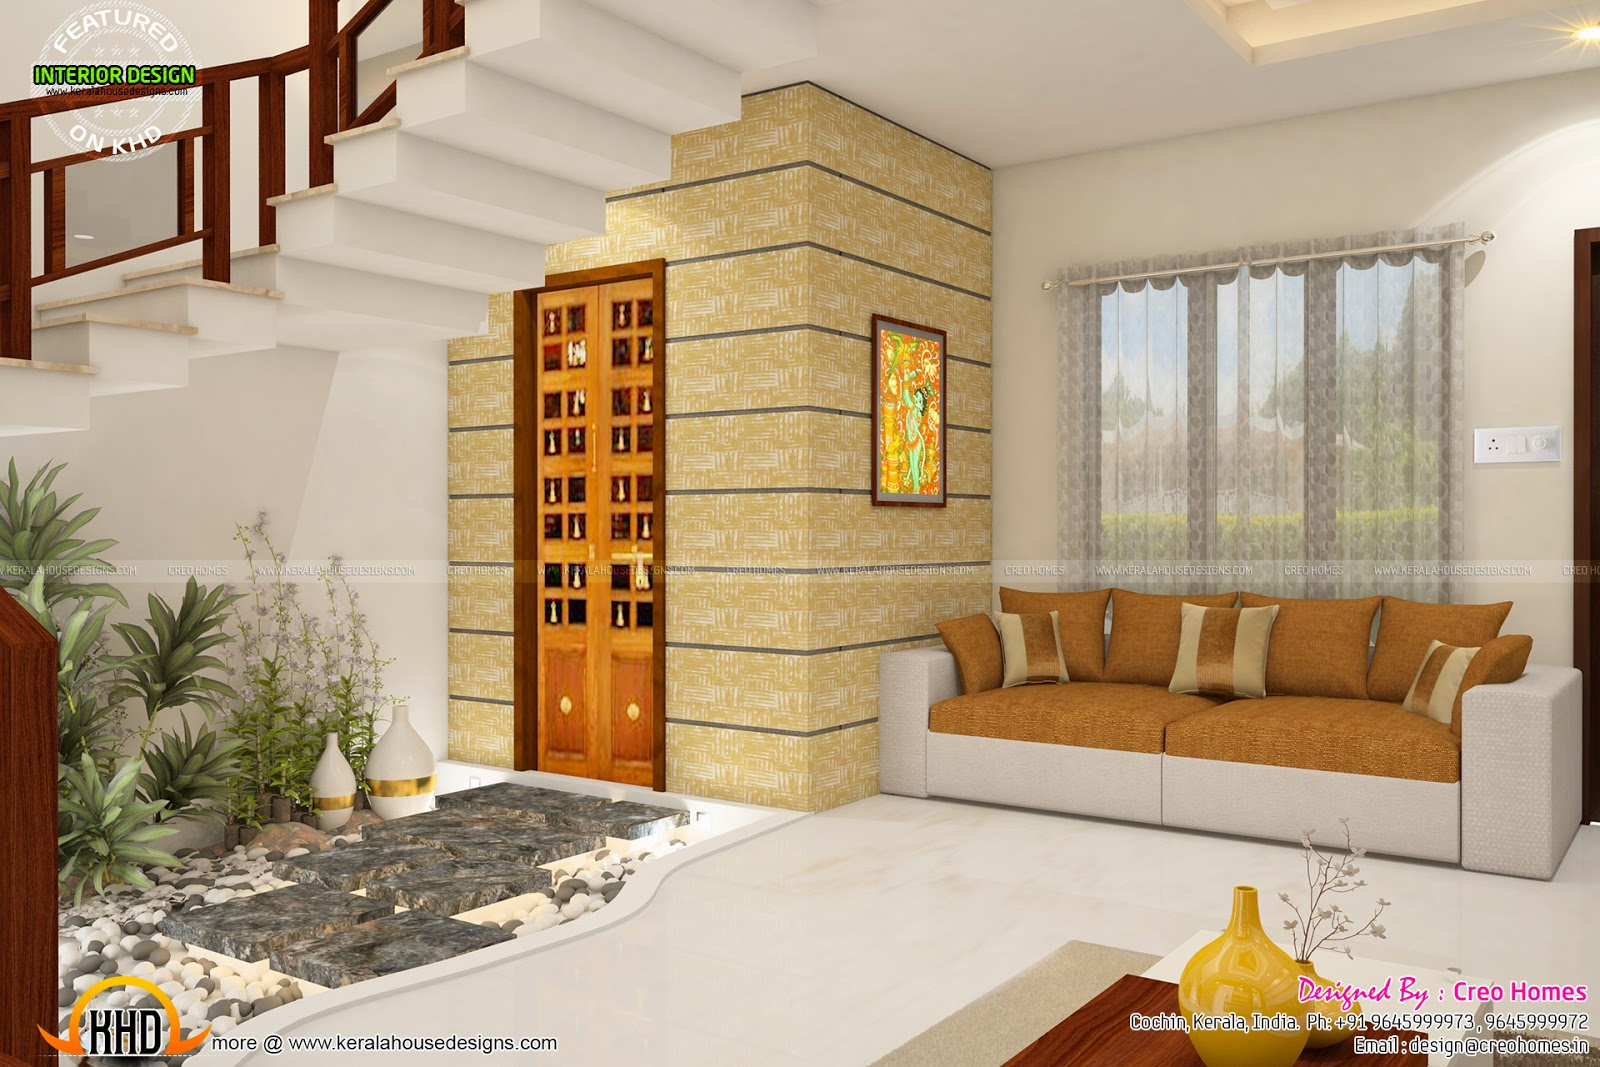 Total Home Interior Solutions By Creo Homes Kerala Home Design And Floor Plans